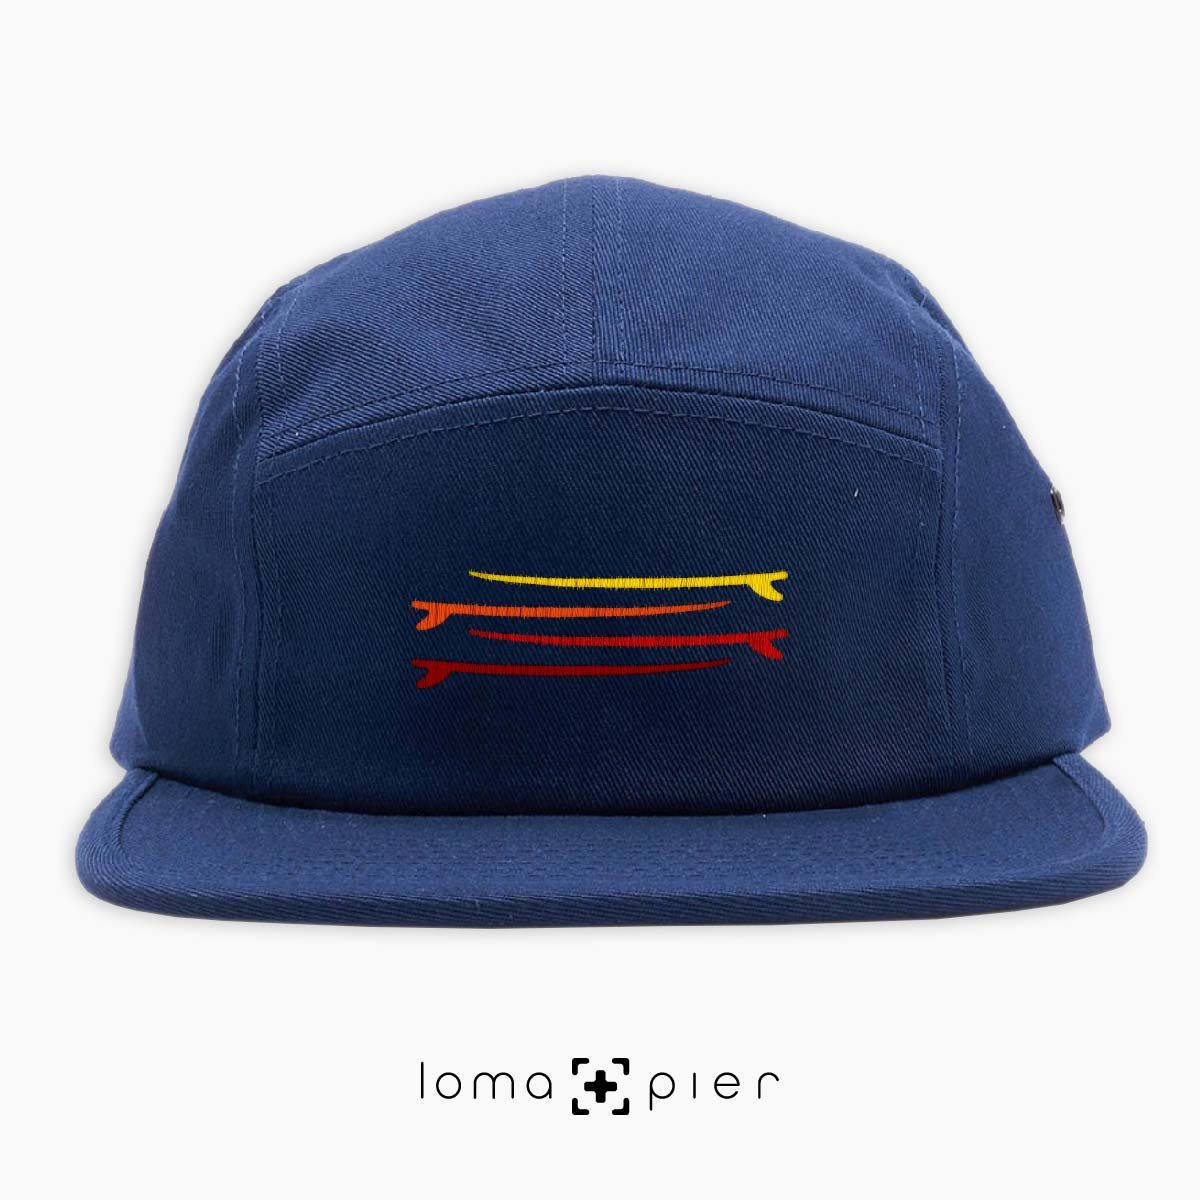 SURF STACK icon embroidered on a navy cotton 5-panel hat by loma+pier hat store